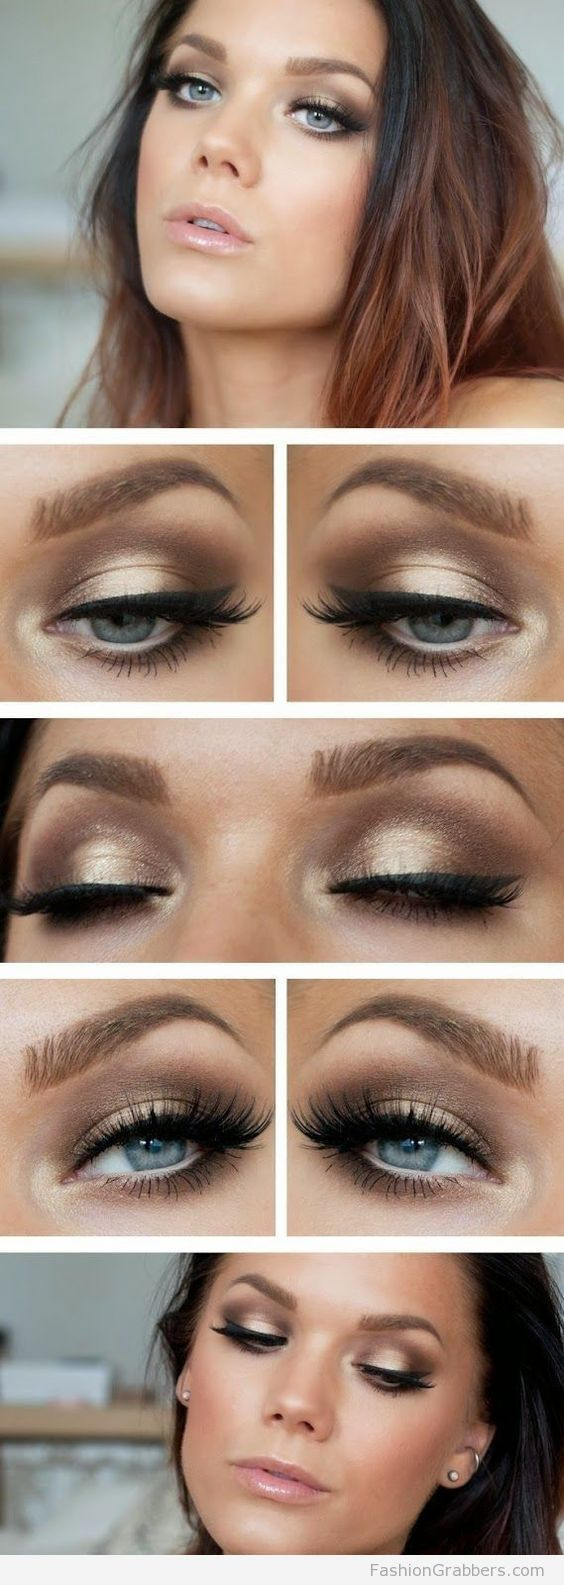 Makeup for the New Year. Holiday Makeup Ideas 70